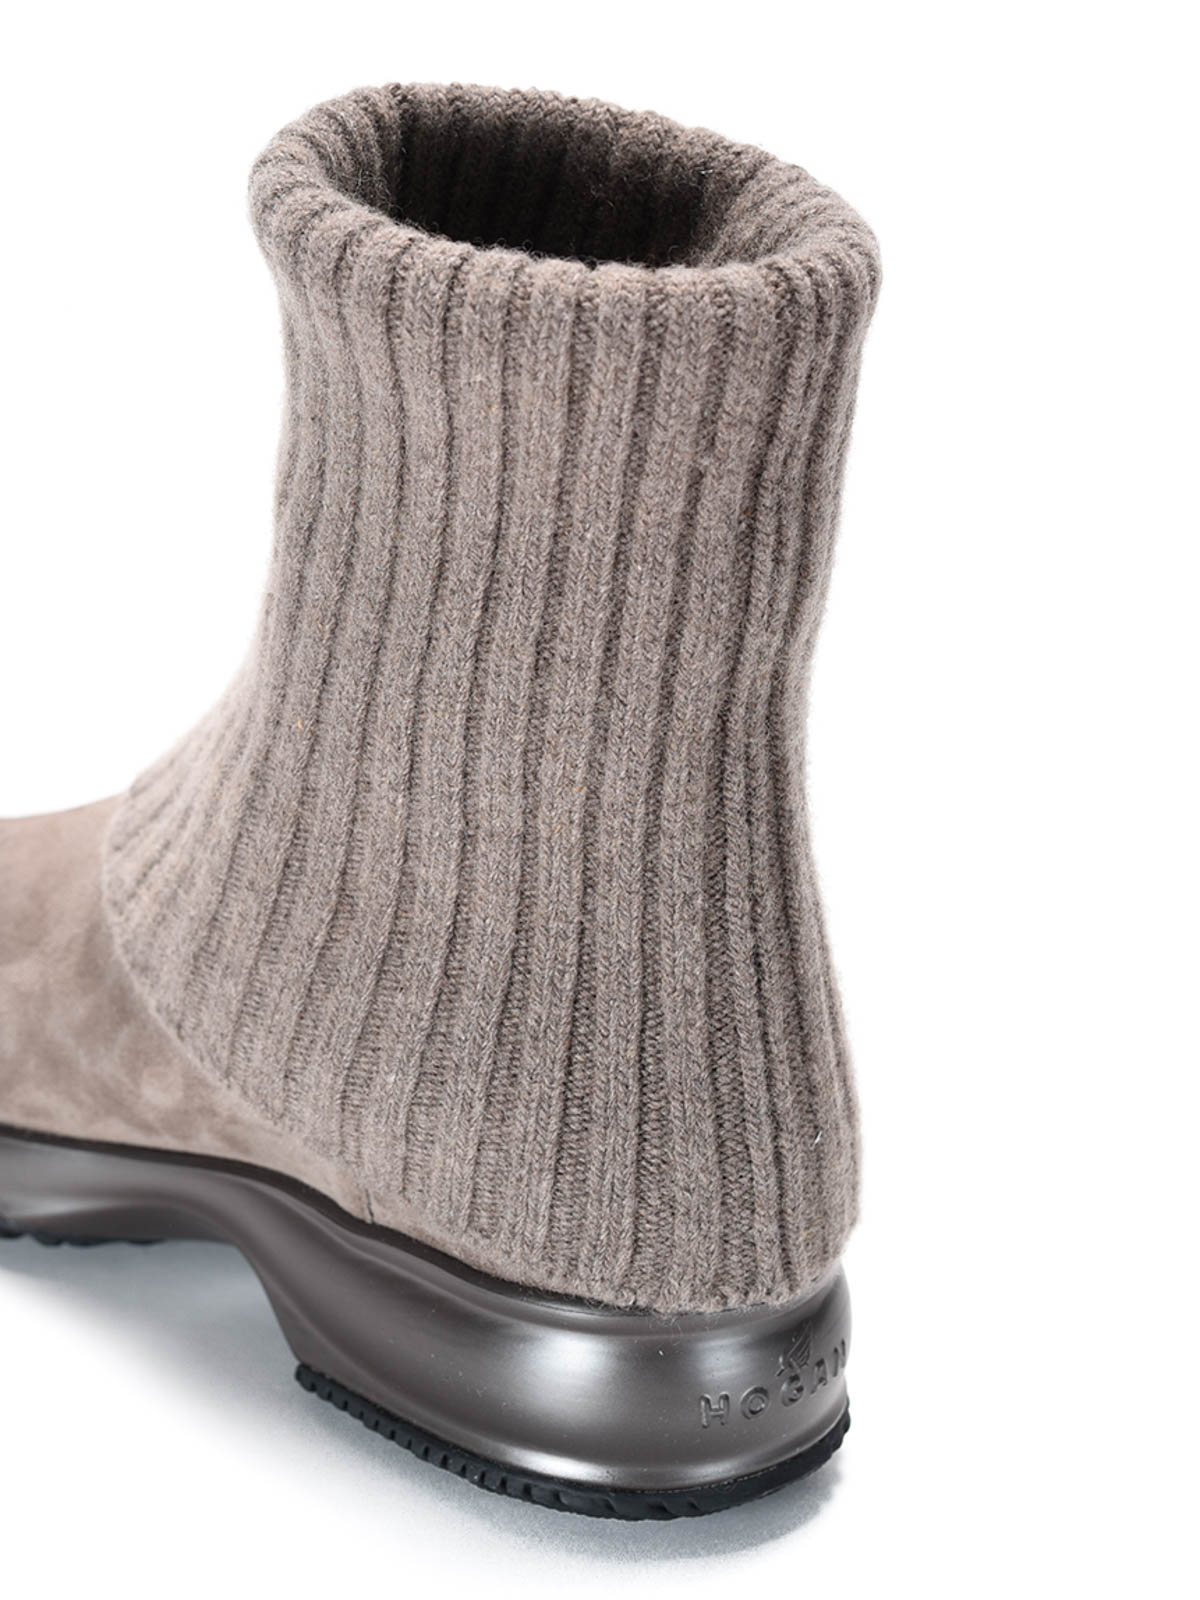 Hogan Knitted Ankle Boots Buy Cheap Manchester Great Sale xbfJqyj